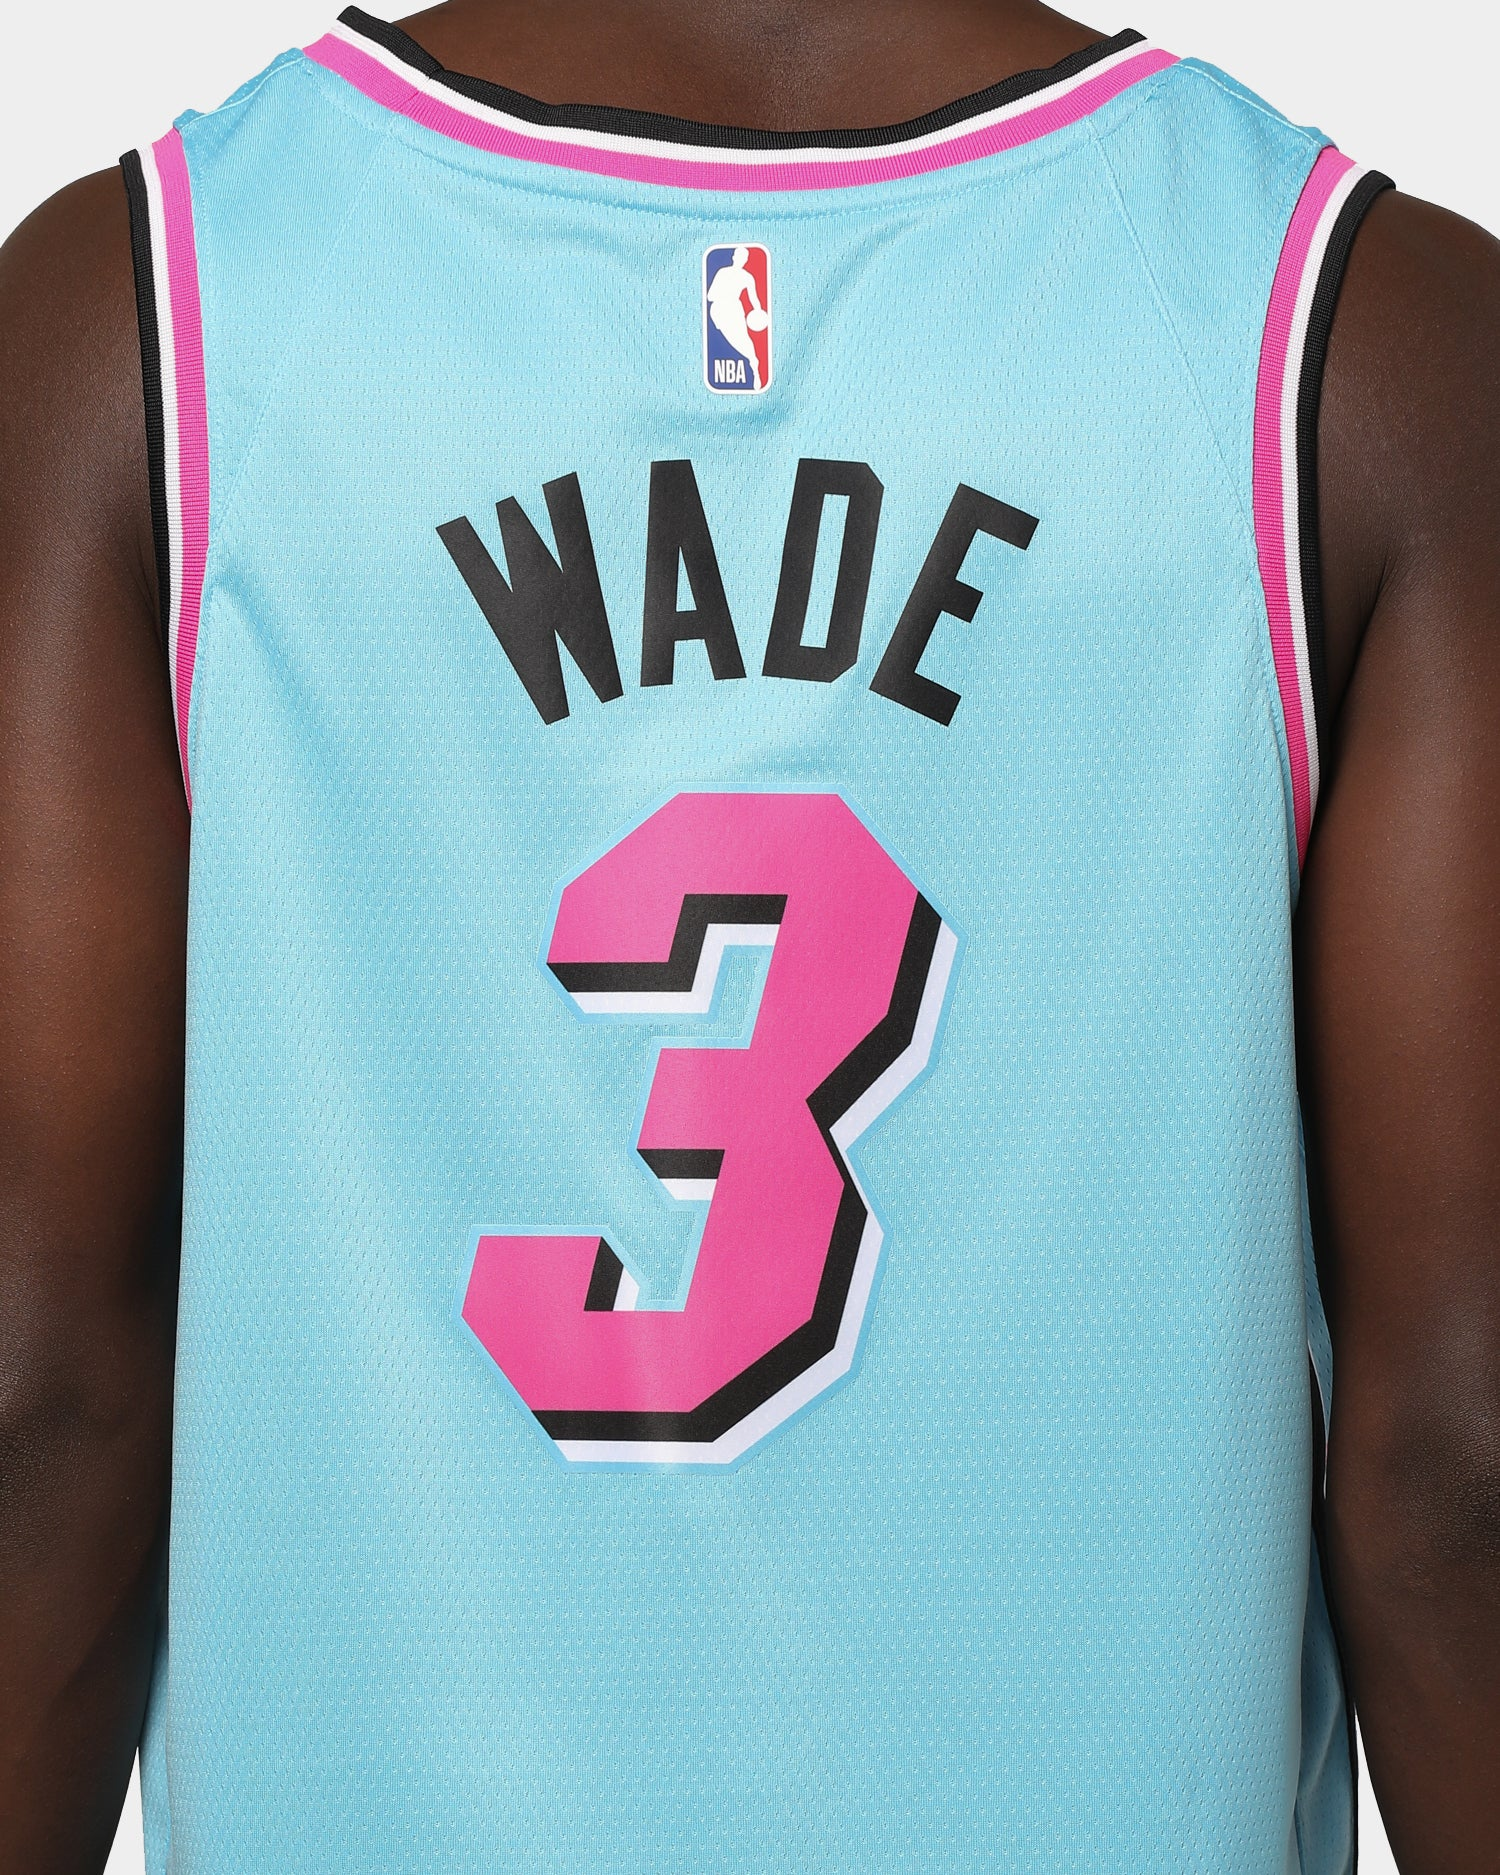 Miami Heat get special championship jackets, jerseys from